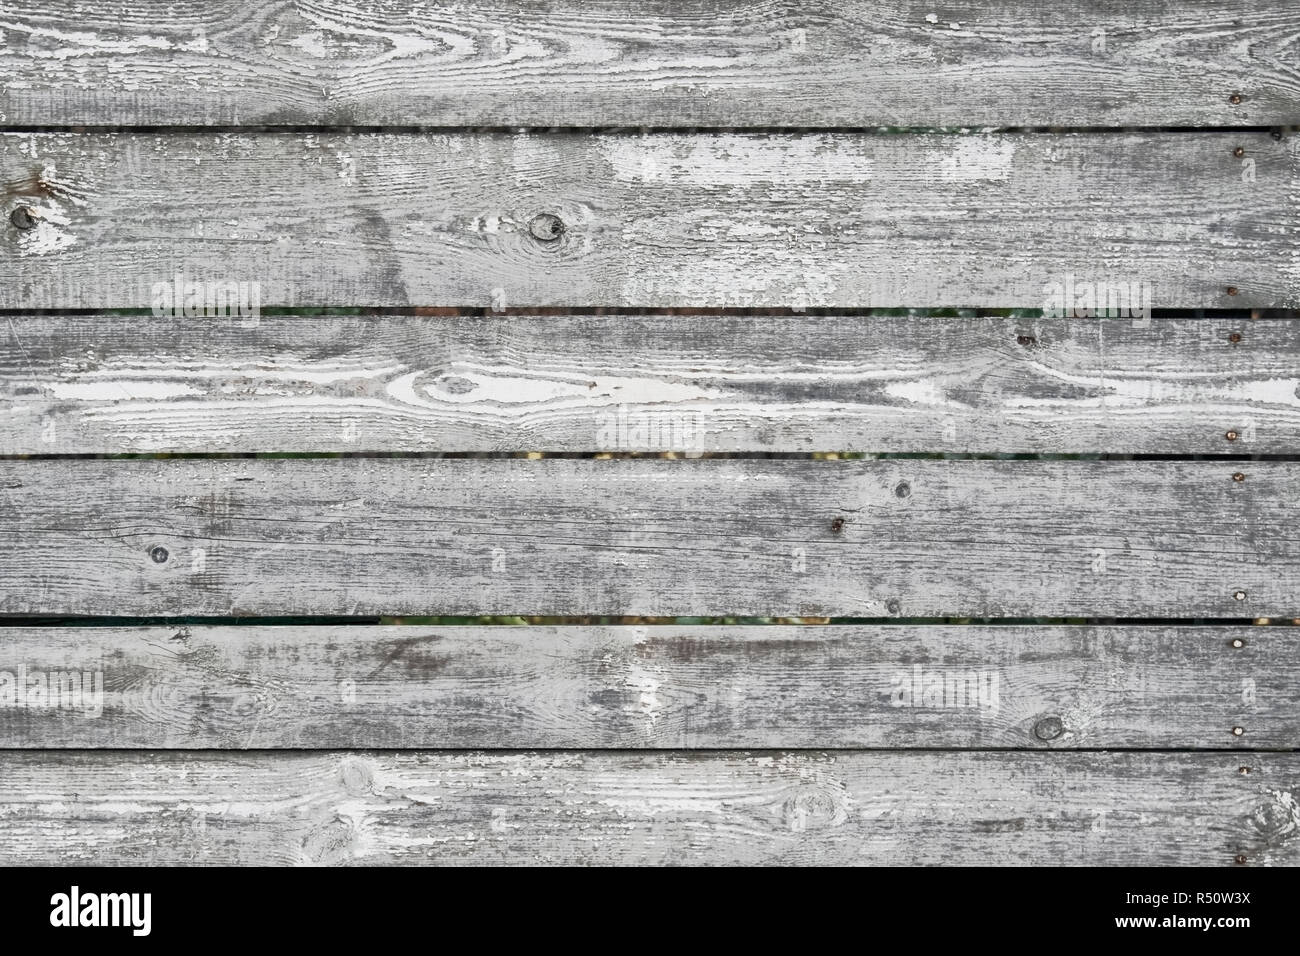 Fence wooden gray with the peeled-off white paint texture of a tree - Stock Image